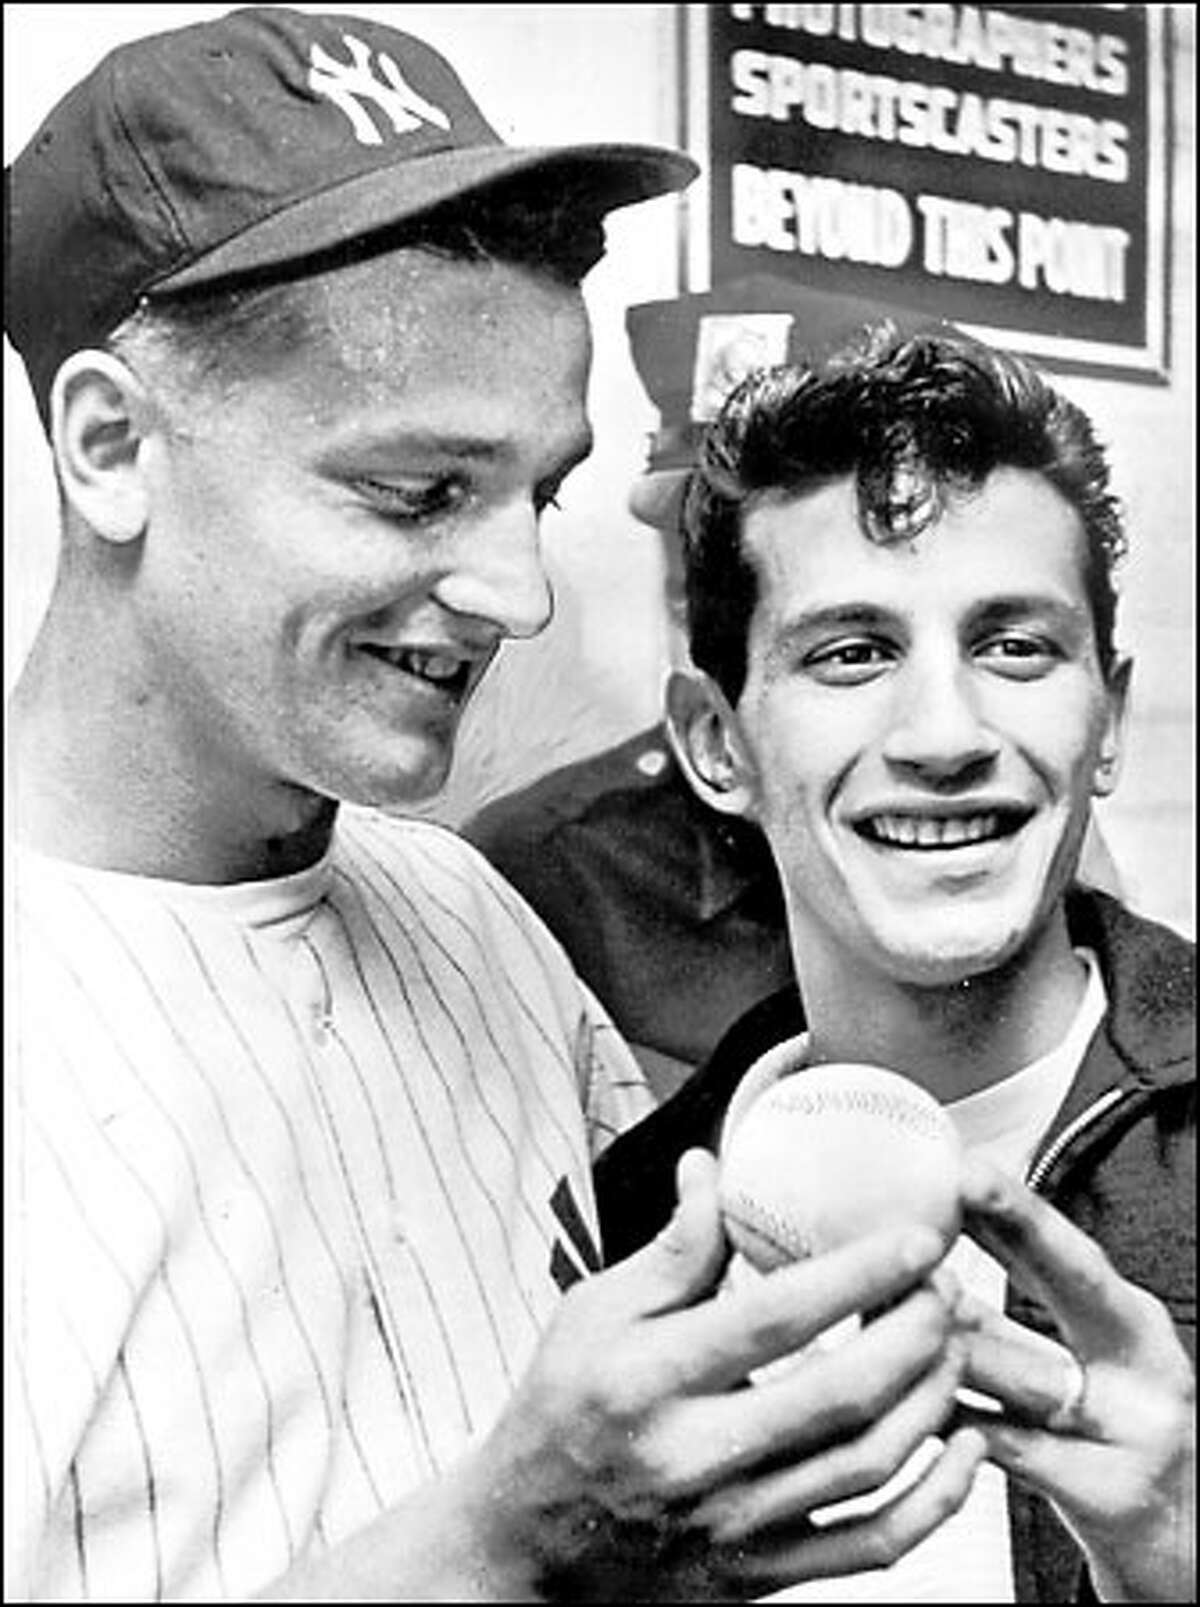 After Sal Durante caught Roger Maris' 61st home run, it earned him a trip to Seattle for a publicity stunt and $6,000.